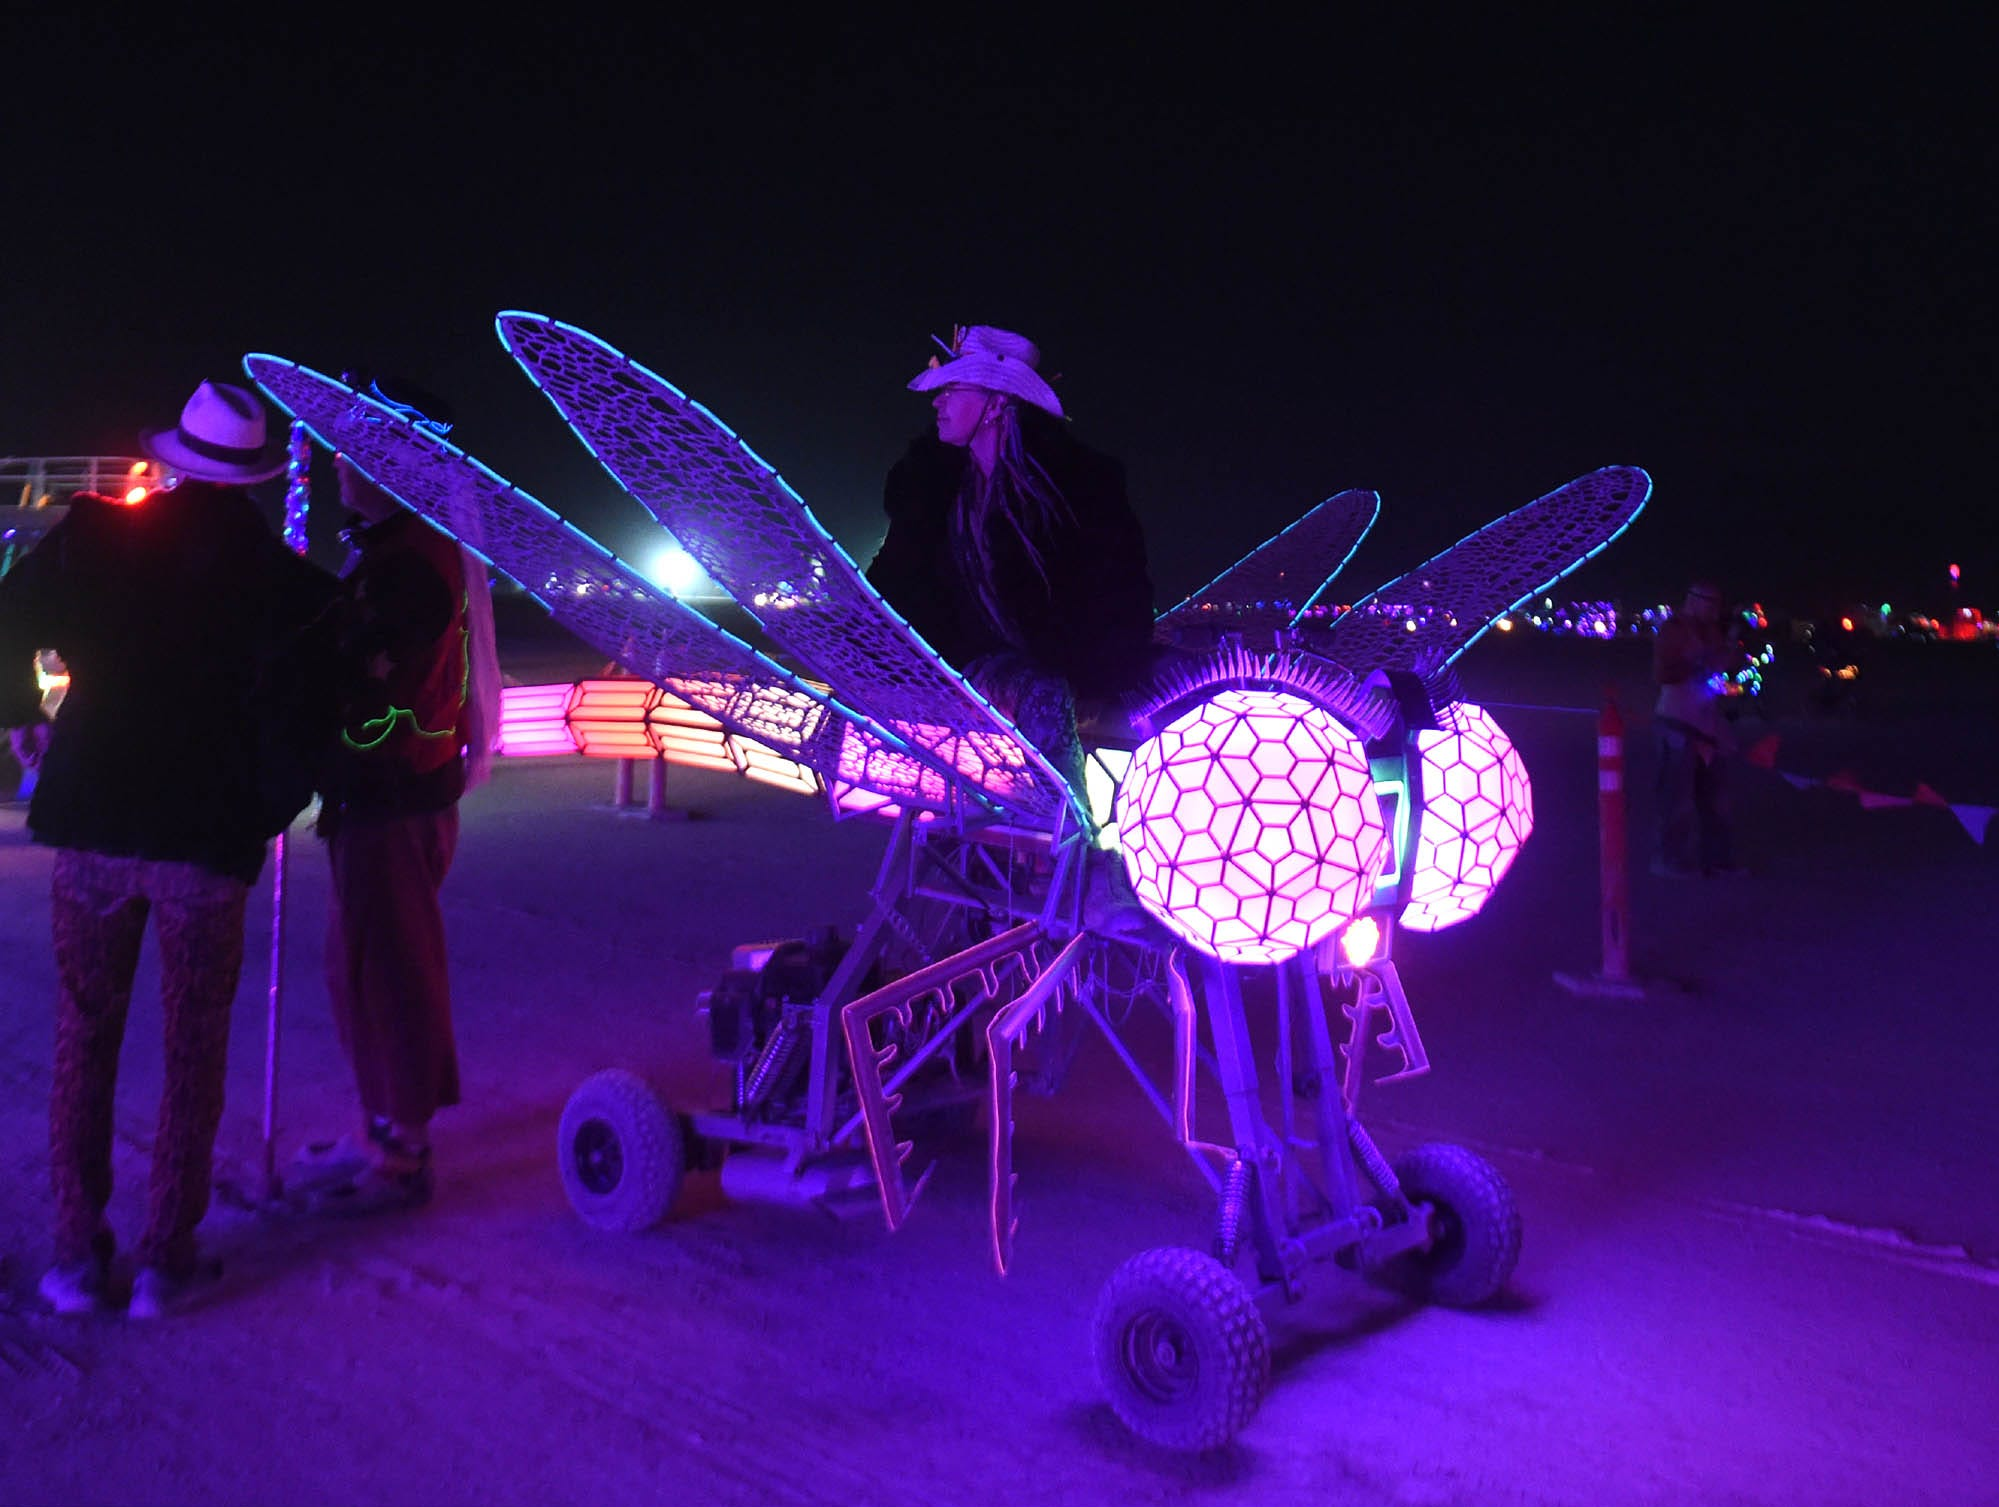 Check out the scene at night during Burning Man 2018 in the Black Rock Desert of Nevada.